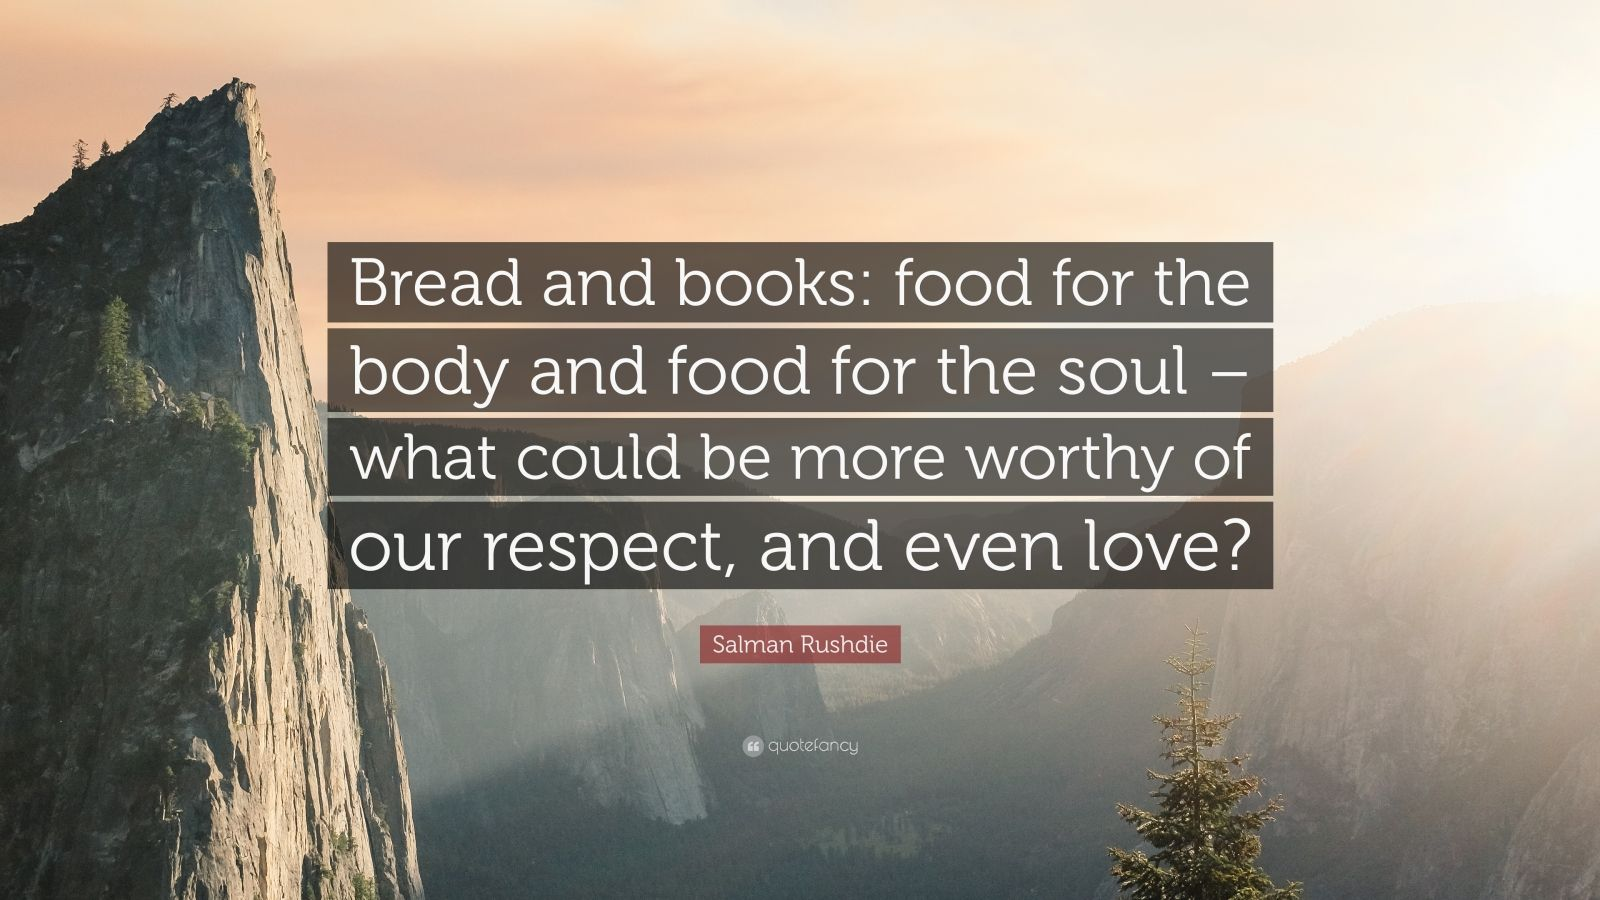 """Salman Rushdie Quote: """"Bread and books: food for the body and food for the soul – what could be more worthy of our respect, and even love?"""""""